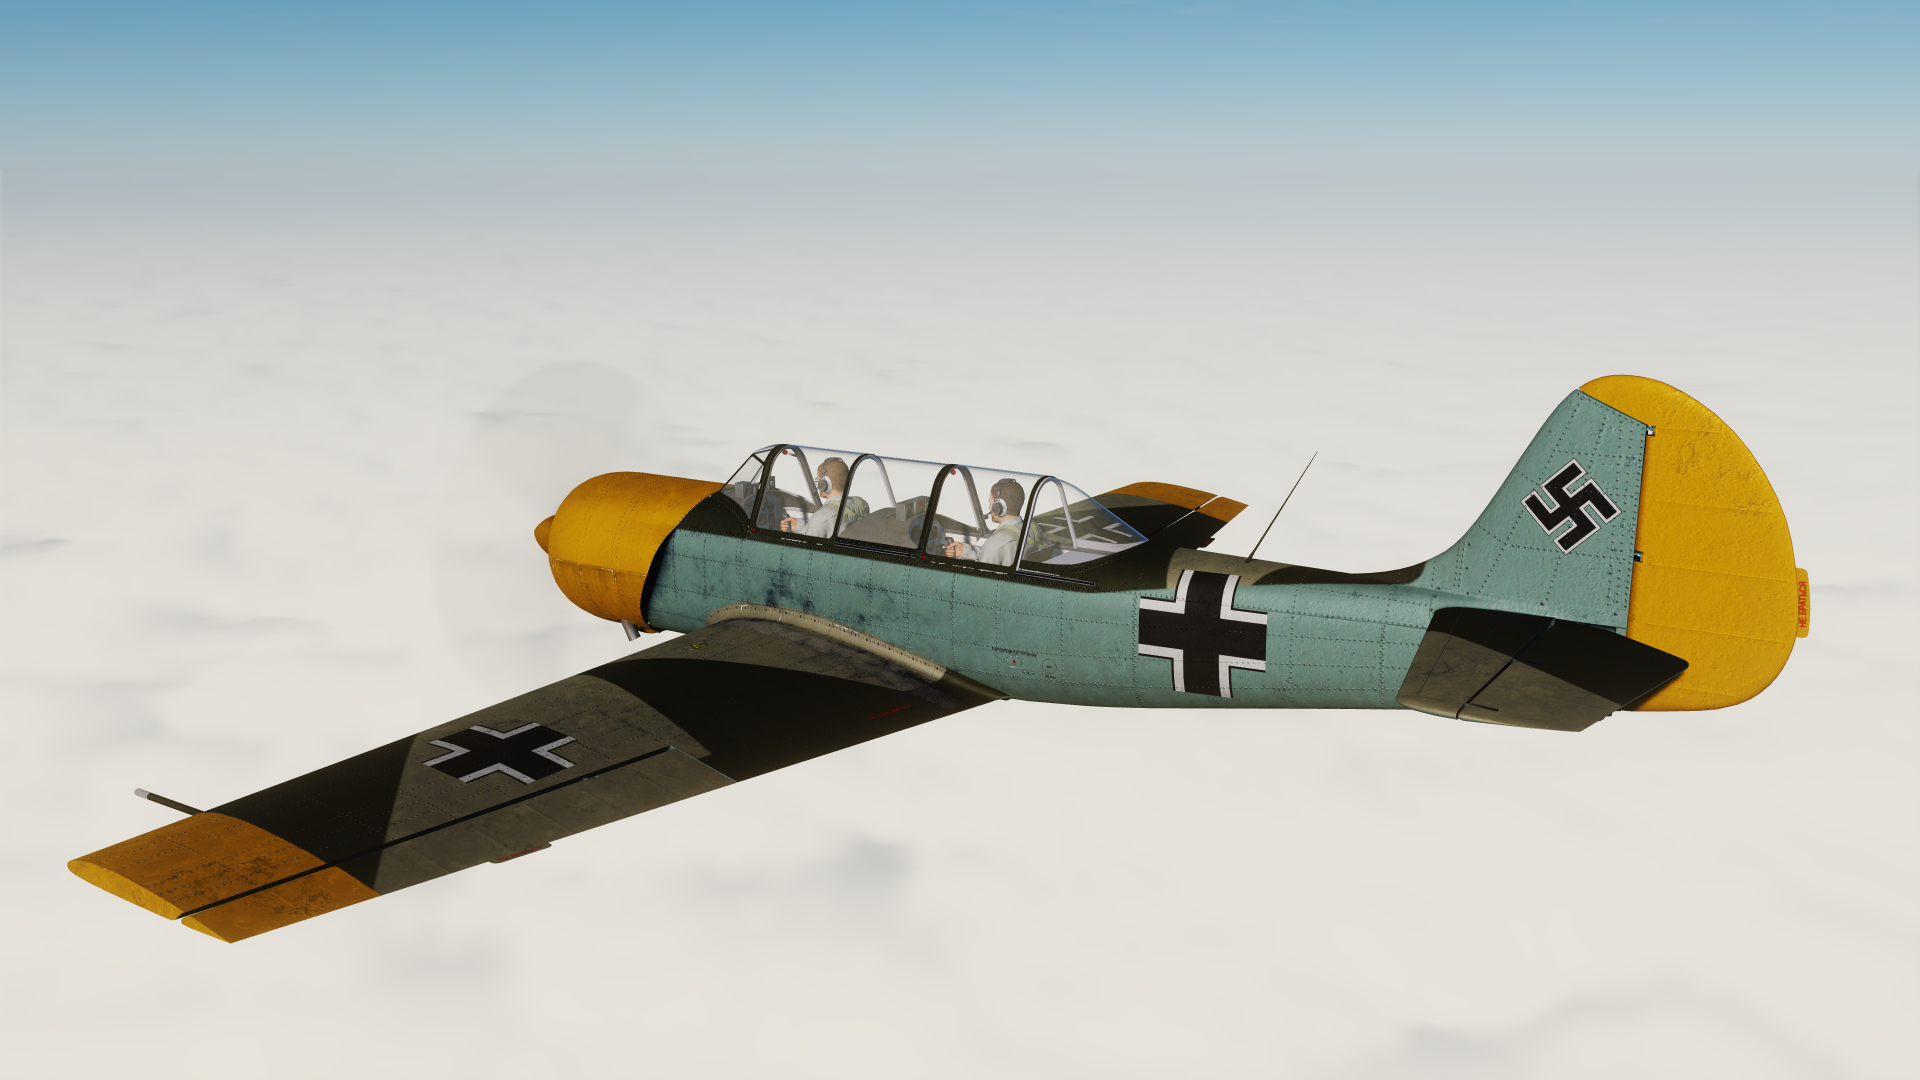 Yak-52 Luftwaffe Early War